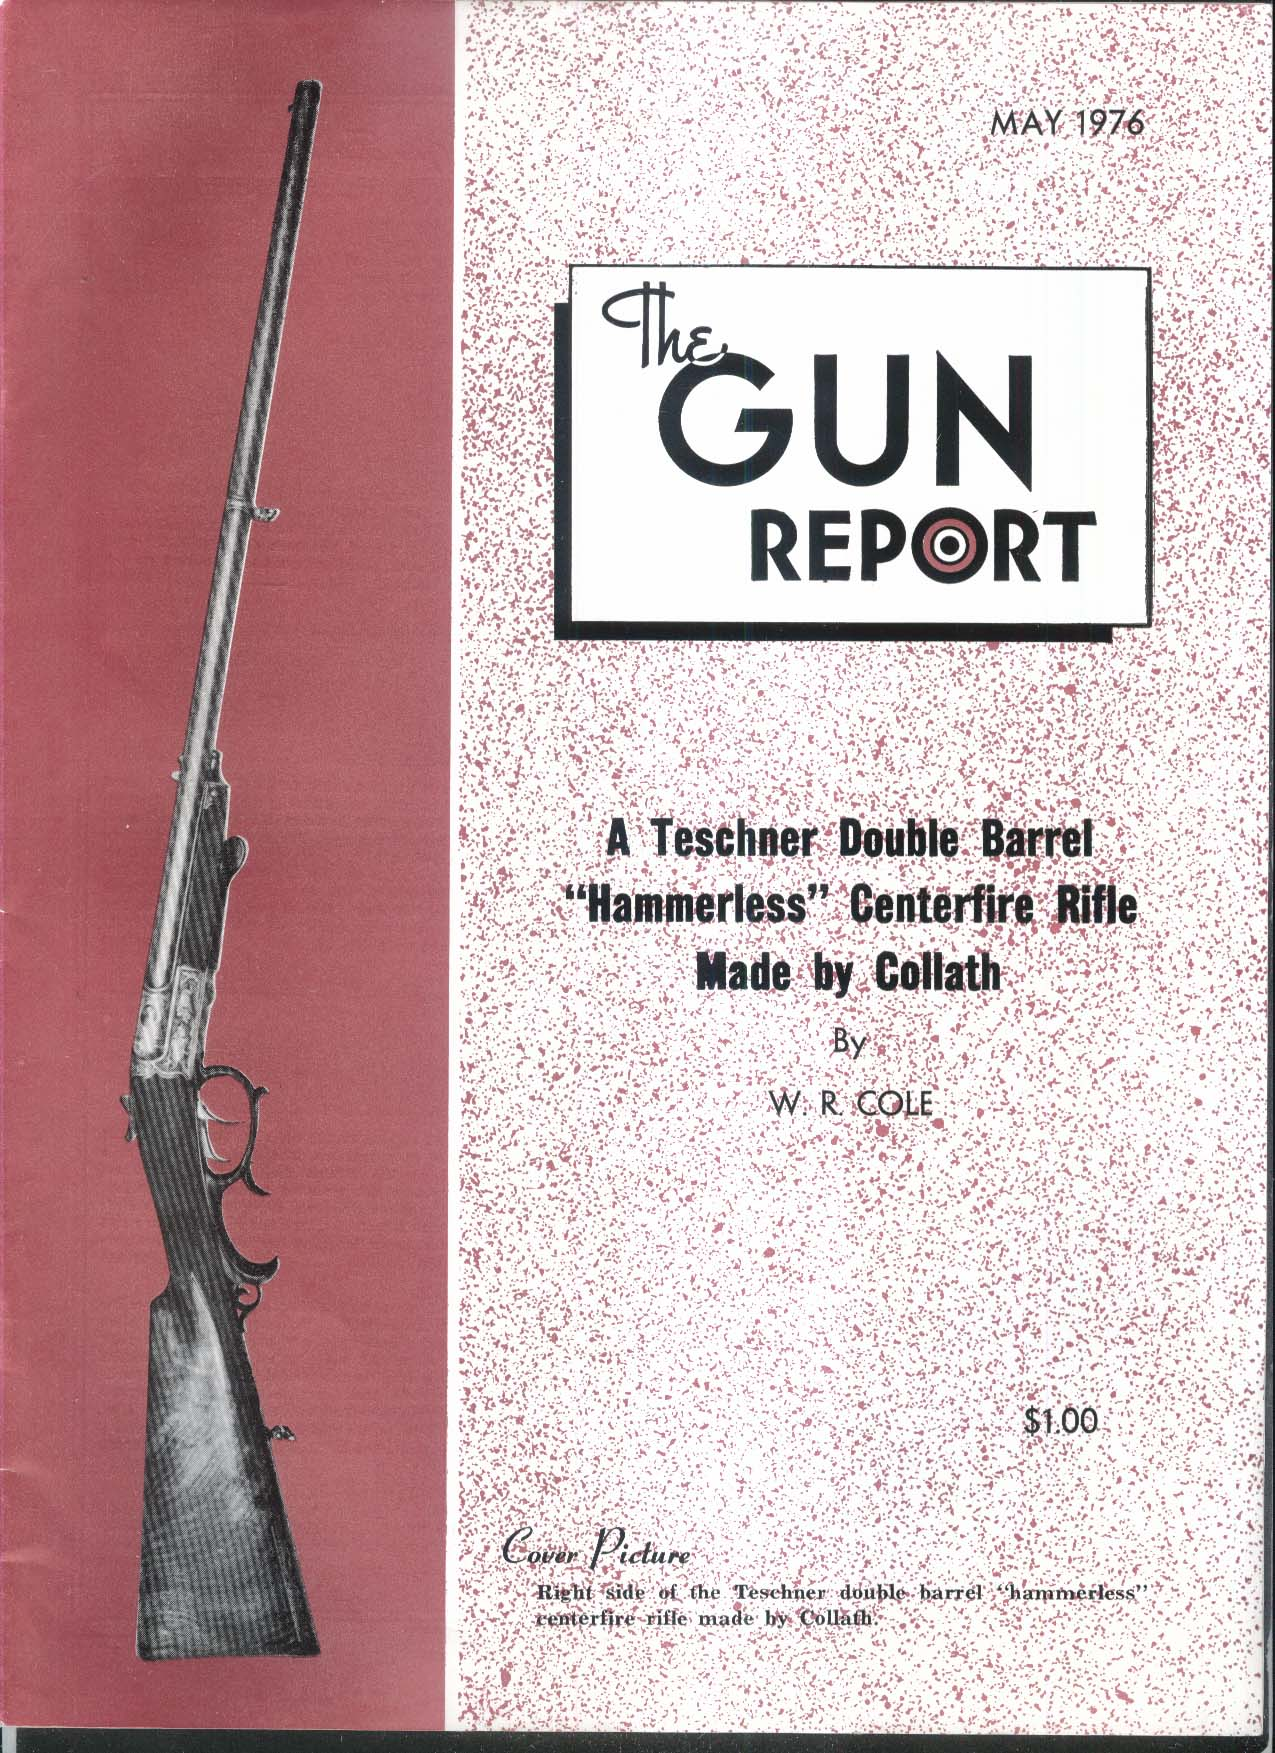 GUN REPORT Teschner Double Barrel Hammerless Rifle Collath 5 1976